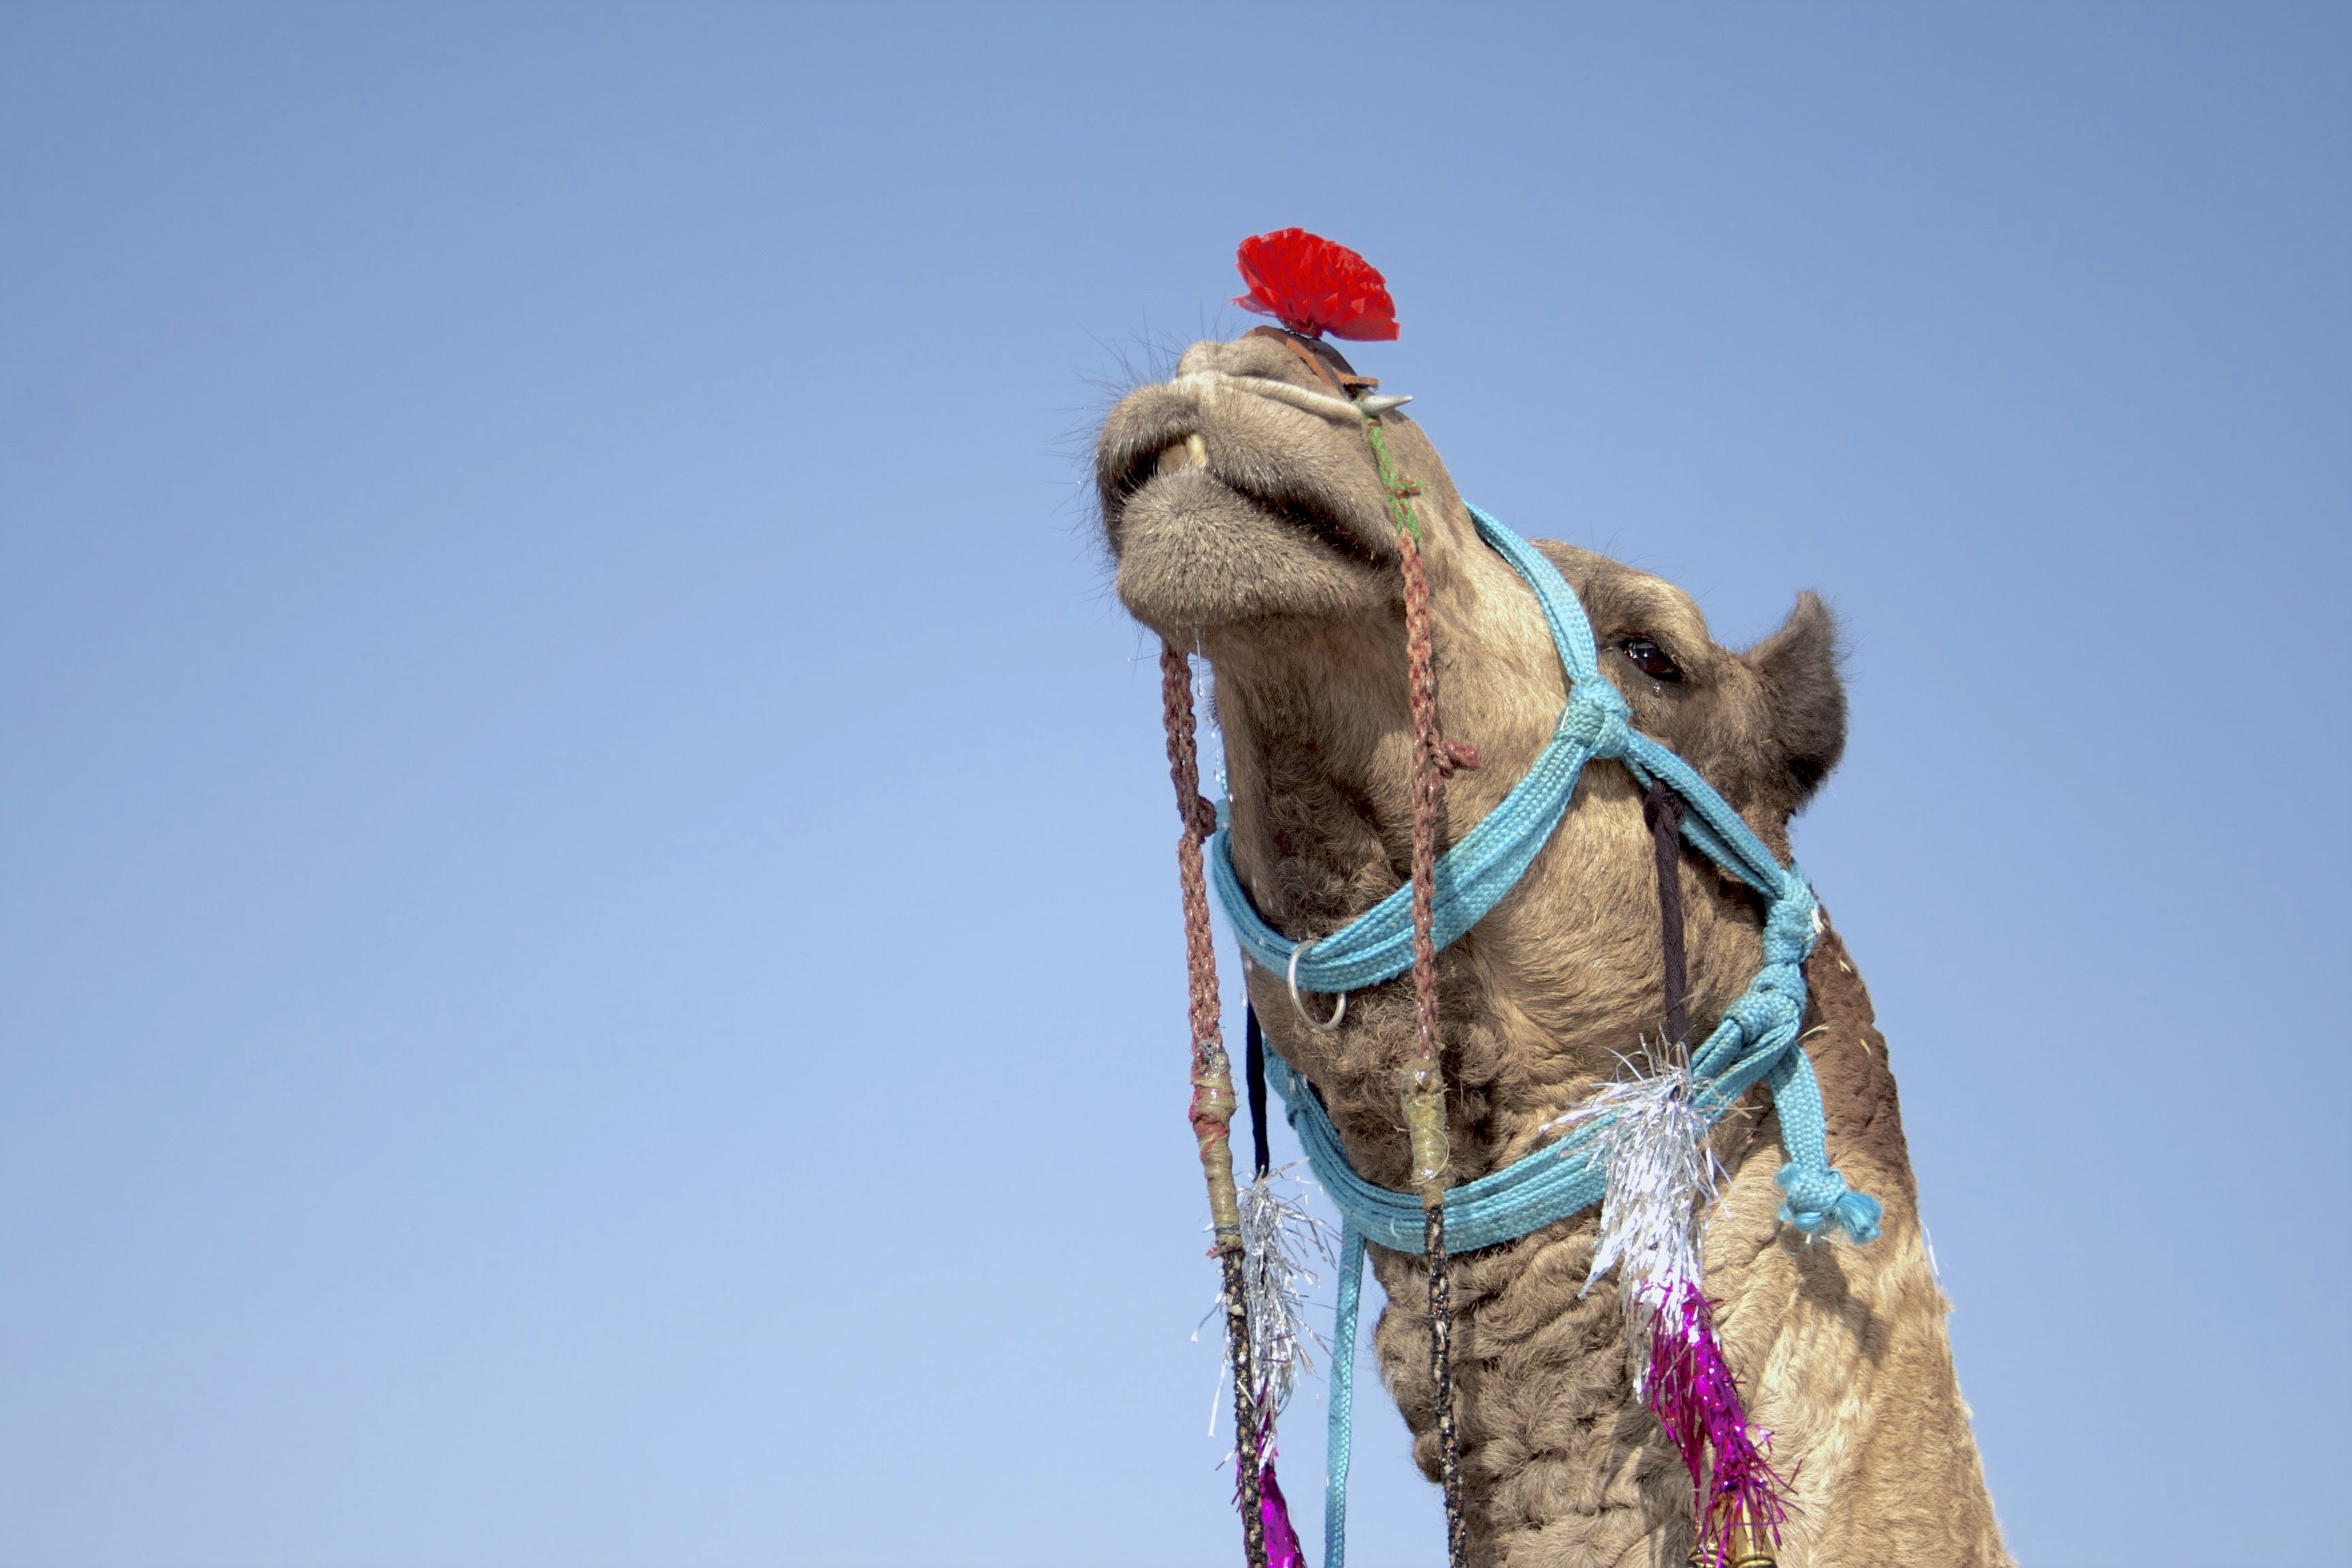 accessories, animal, Arabian camel